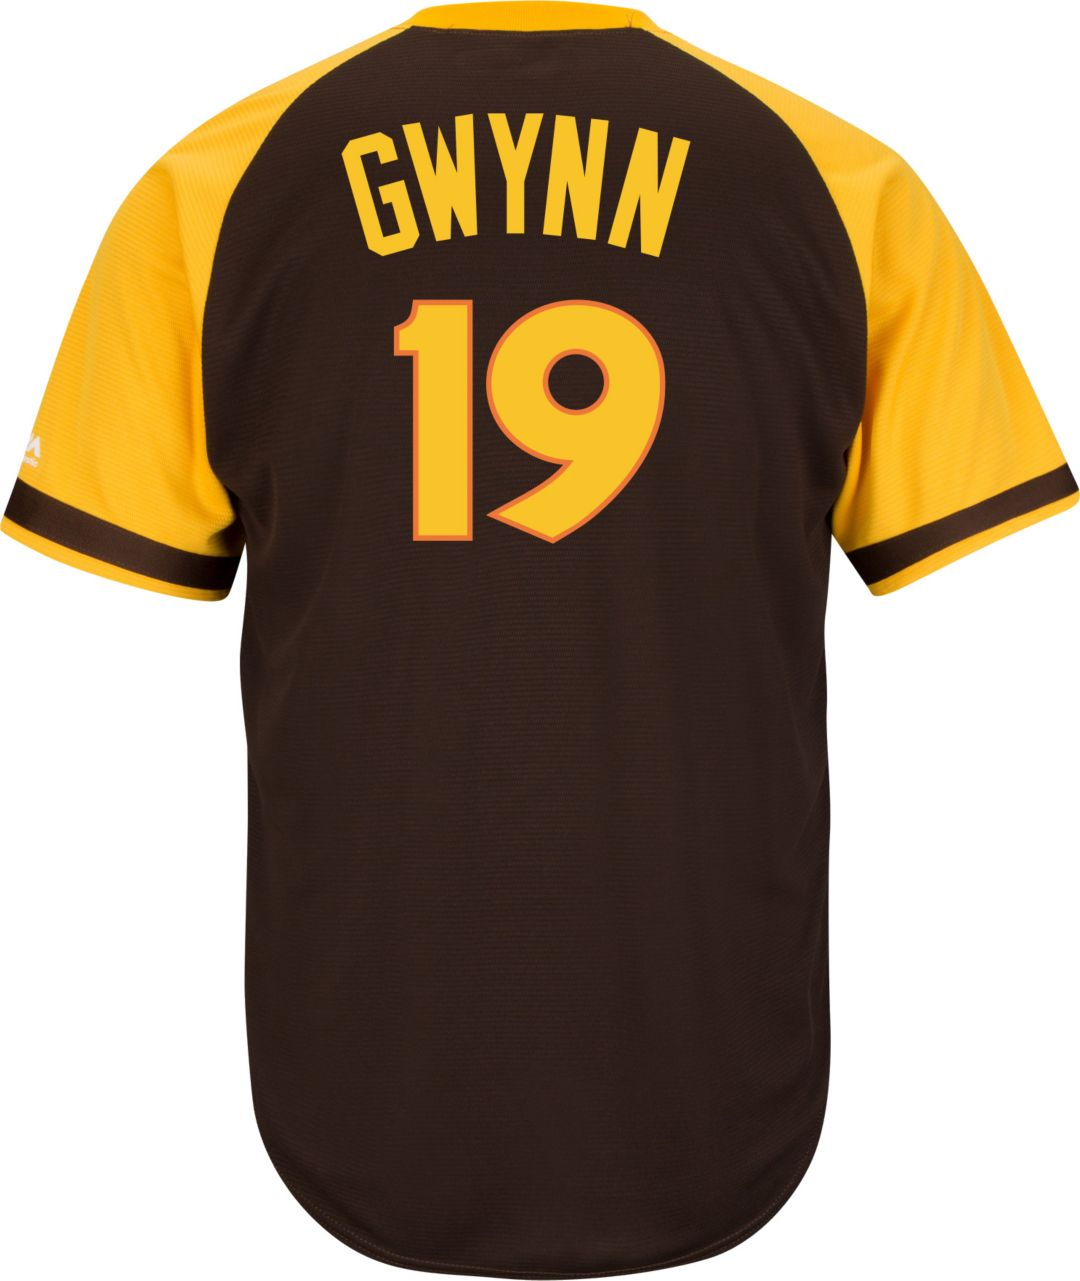 size 40 41e78 04581 Majestic Men's Replica San Diego Padres Tony Gwynn Cool Base Brown  Cooperstown Jersey